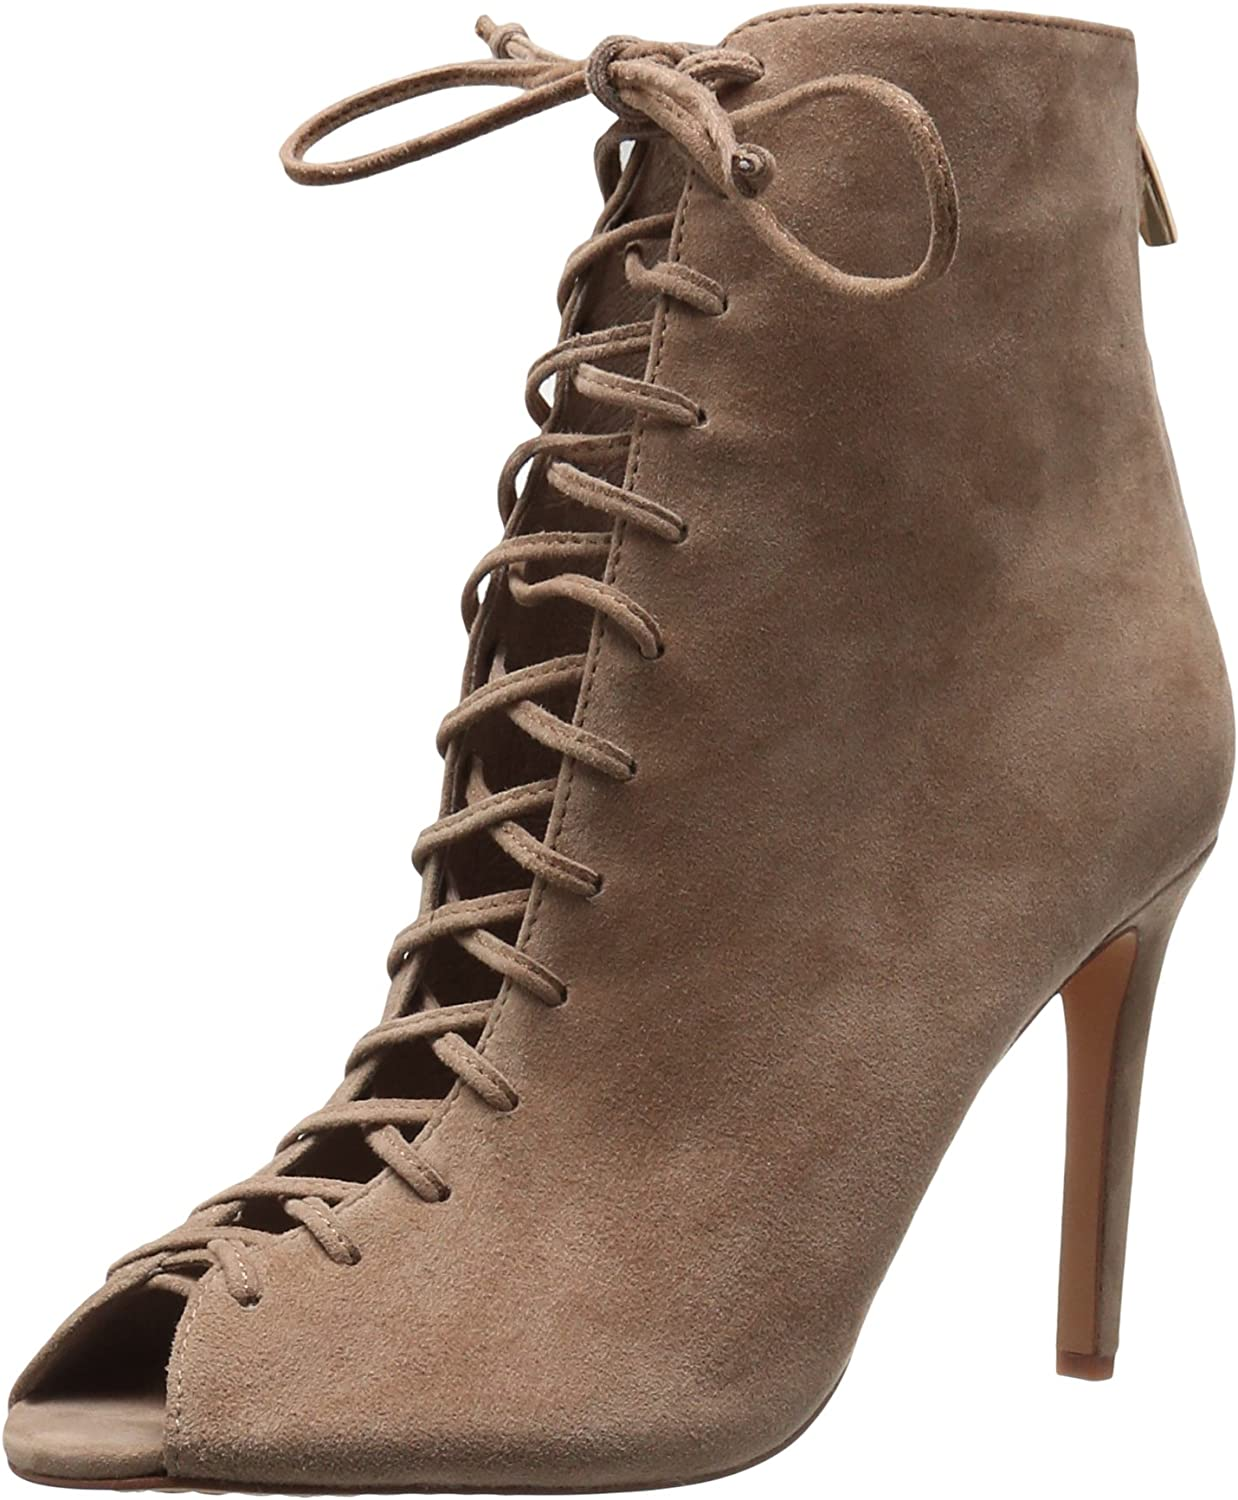 Vince Camuto Women's Kelby Ankle Bootie